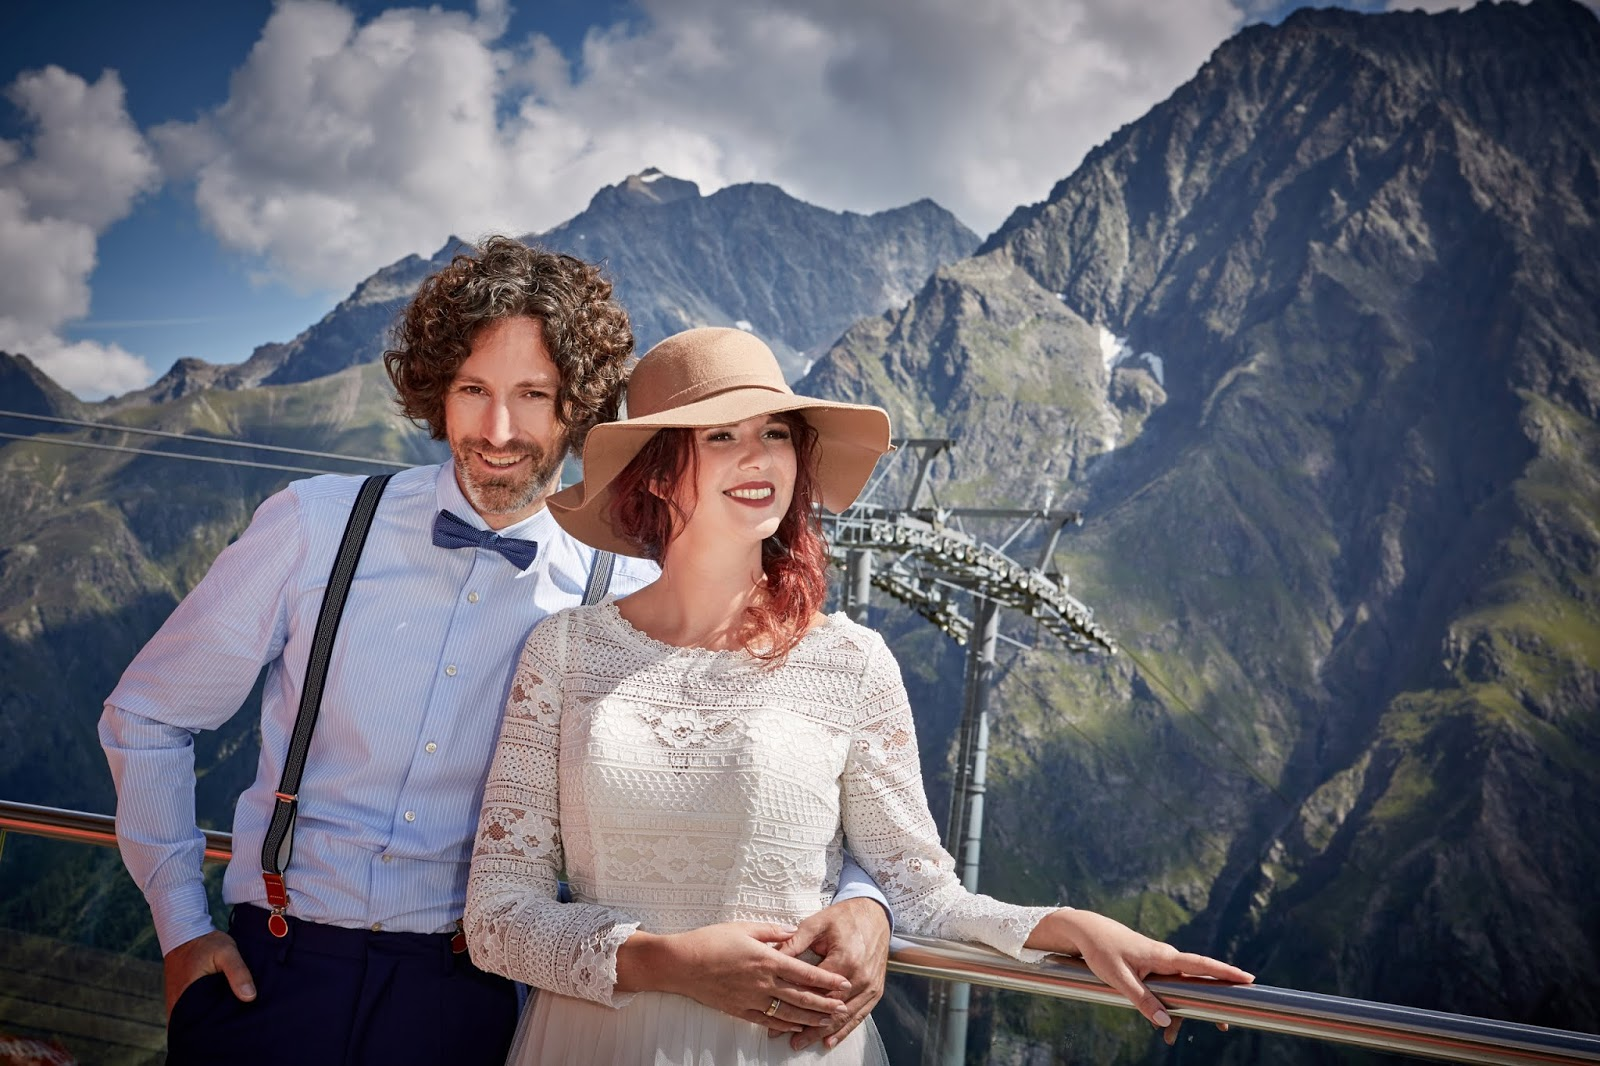 An der Bergbahn, just married, Hochzeitsringe, Pitztal, Bergromantik, romantische Berghochzeit, Boho Mountain Wedding, Hochzeitscocktail, Berghochzeit in Tirol, Mountain wedding, Pure Resort Pitztal, Fotograf Marc Gilsdorf Alpenwedding, Hochzeitsplaneragentur 4 weddings & events, Uschi Glas, Styled Shooting, Destination Wedding Austria, Braut und Bräutigam Shooting, heiraten in den Bergen